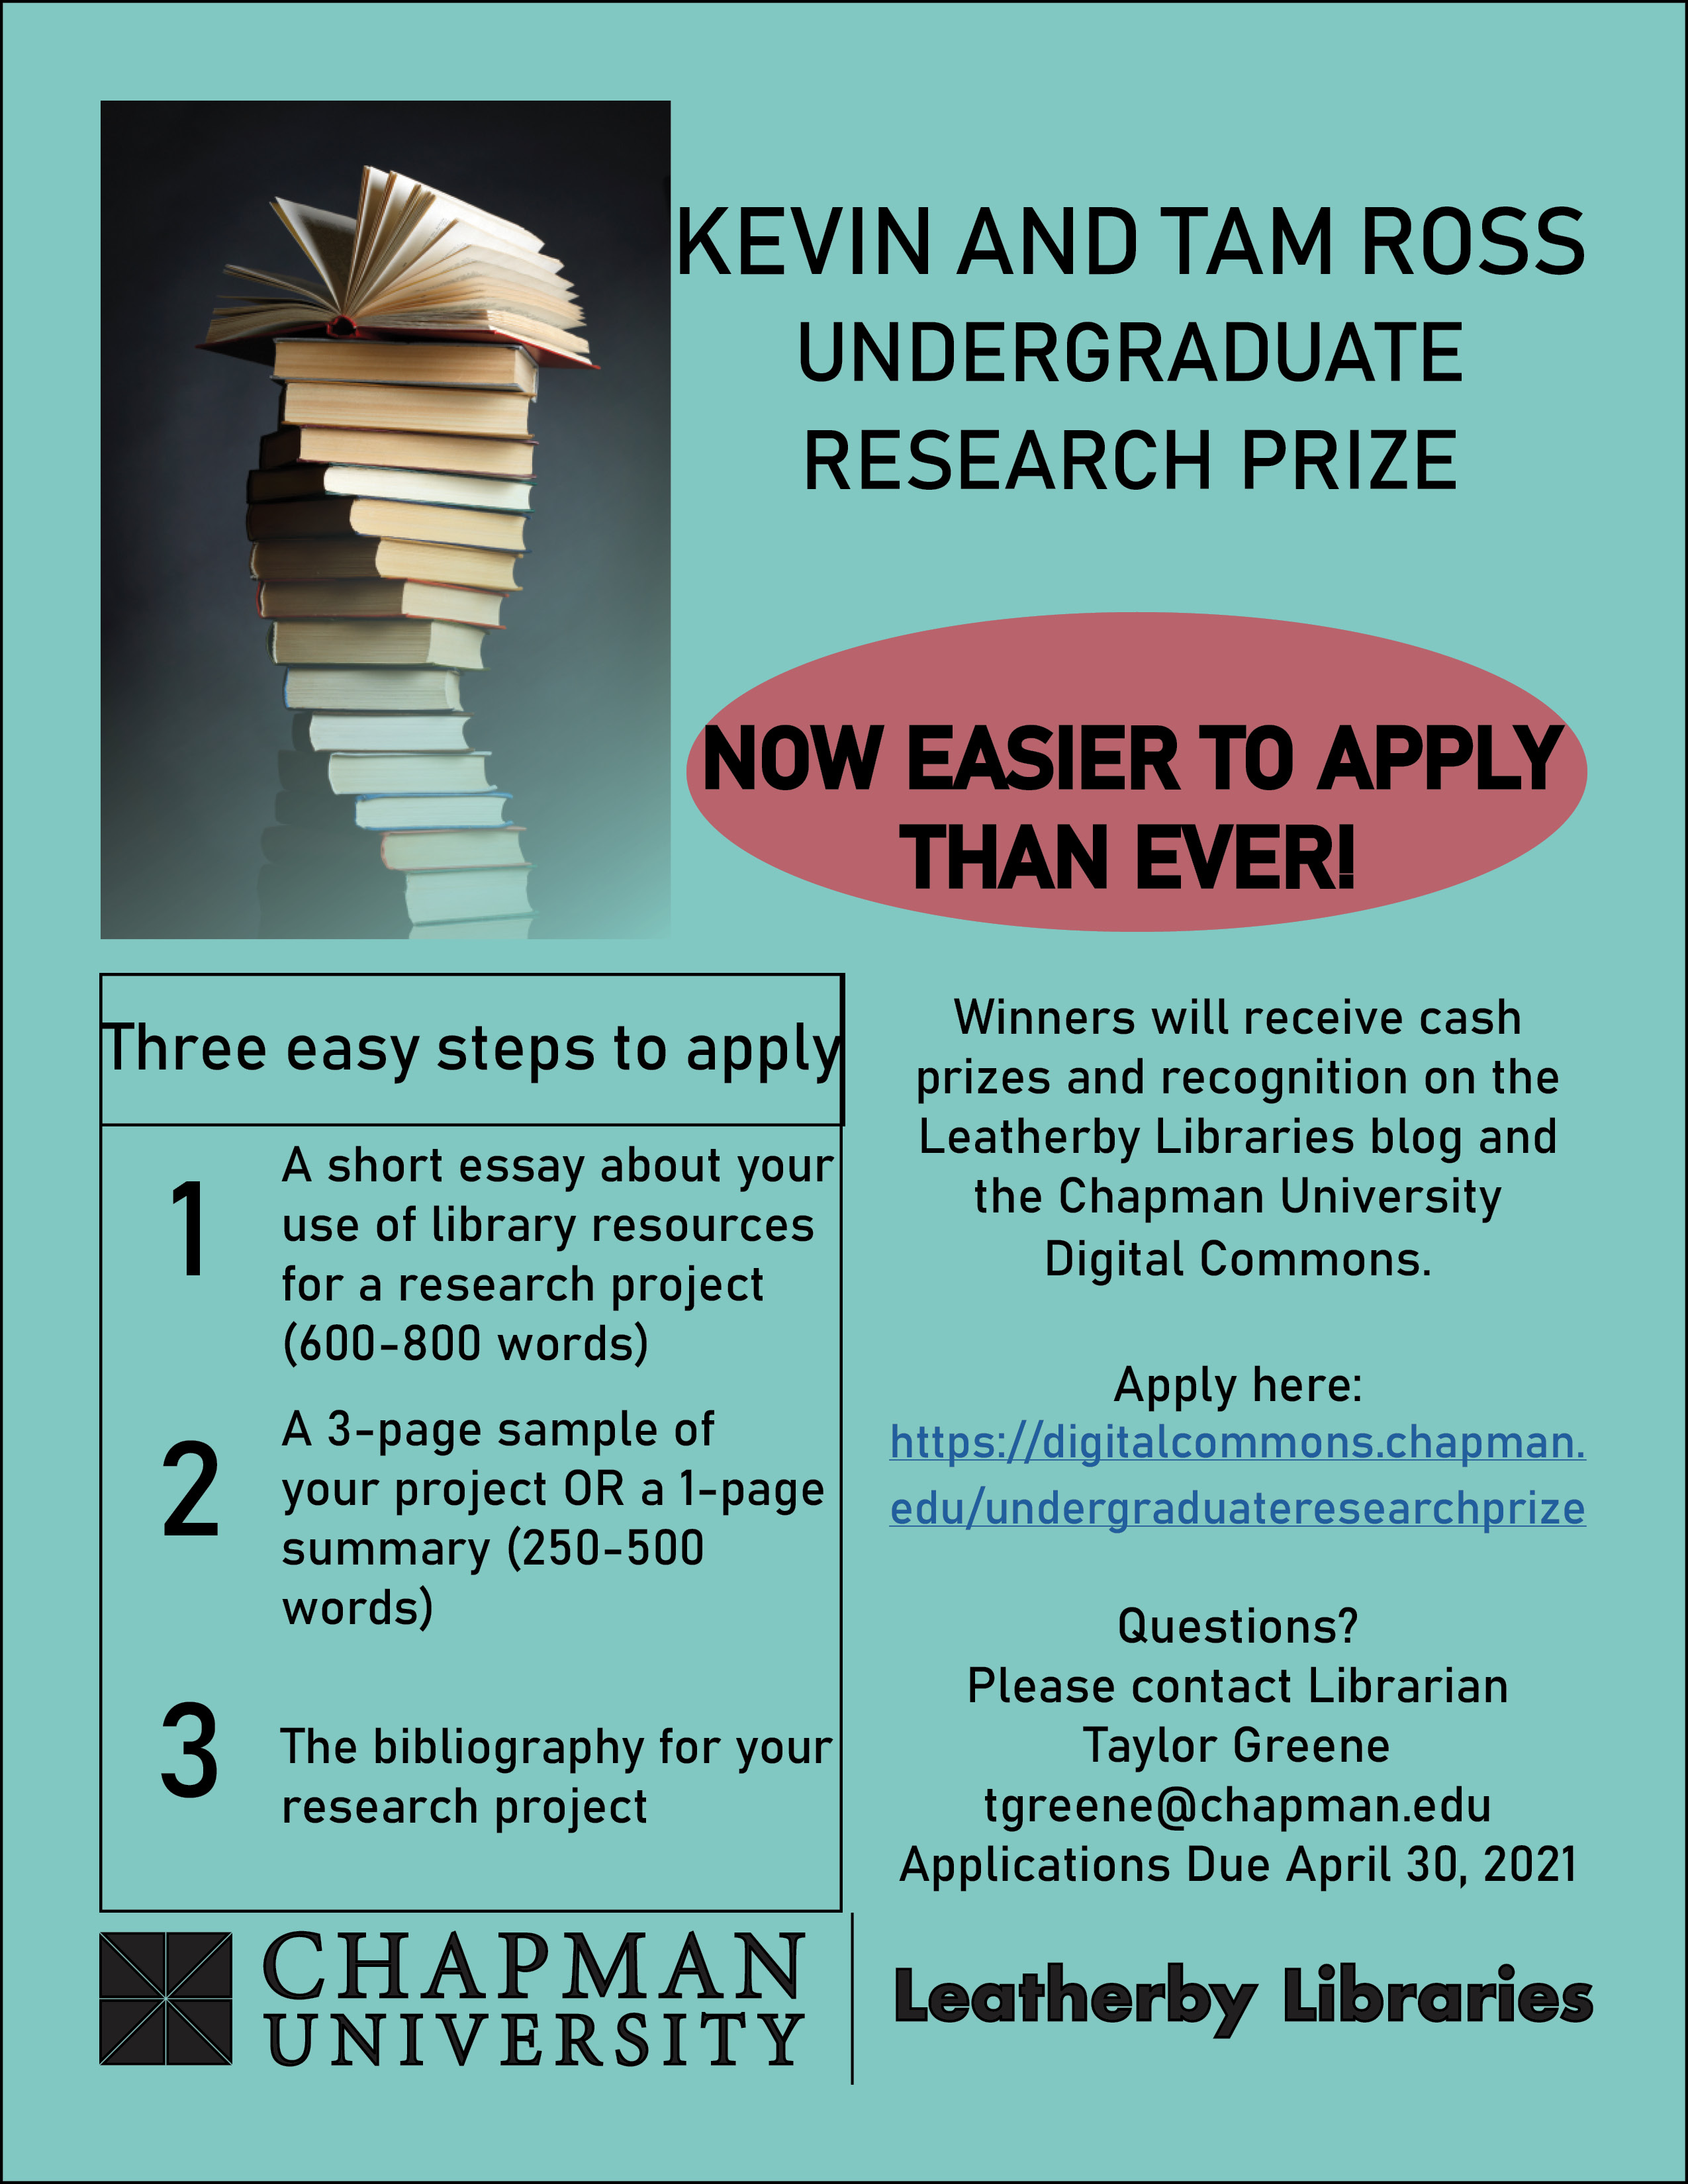 Flyer for the 2021 Kevin and Tam Ross Undergraduate Research Prize